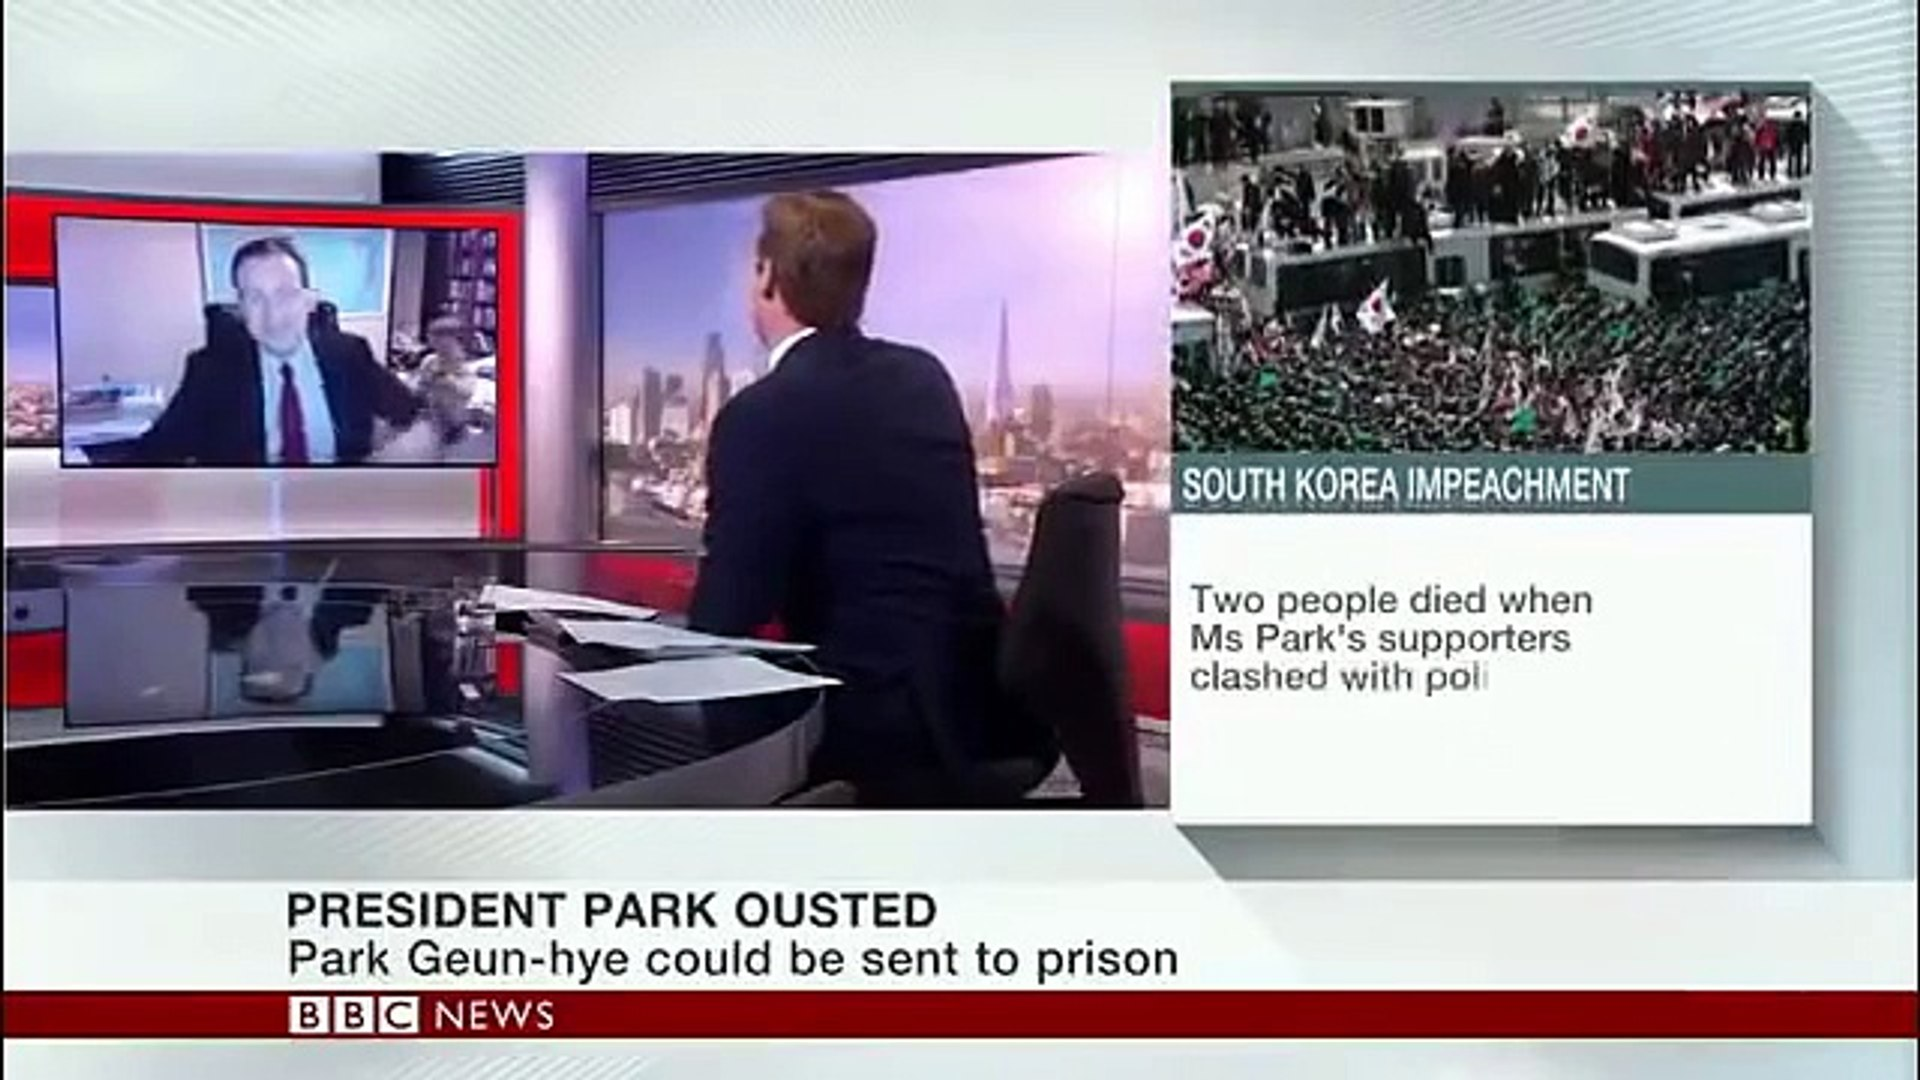 FUNNIEST TV LIVE MOMENT ON BBC NEWS - Children interrupts BBC News Interview